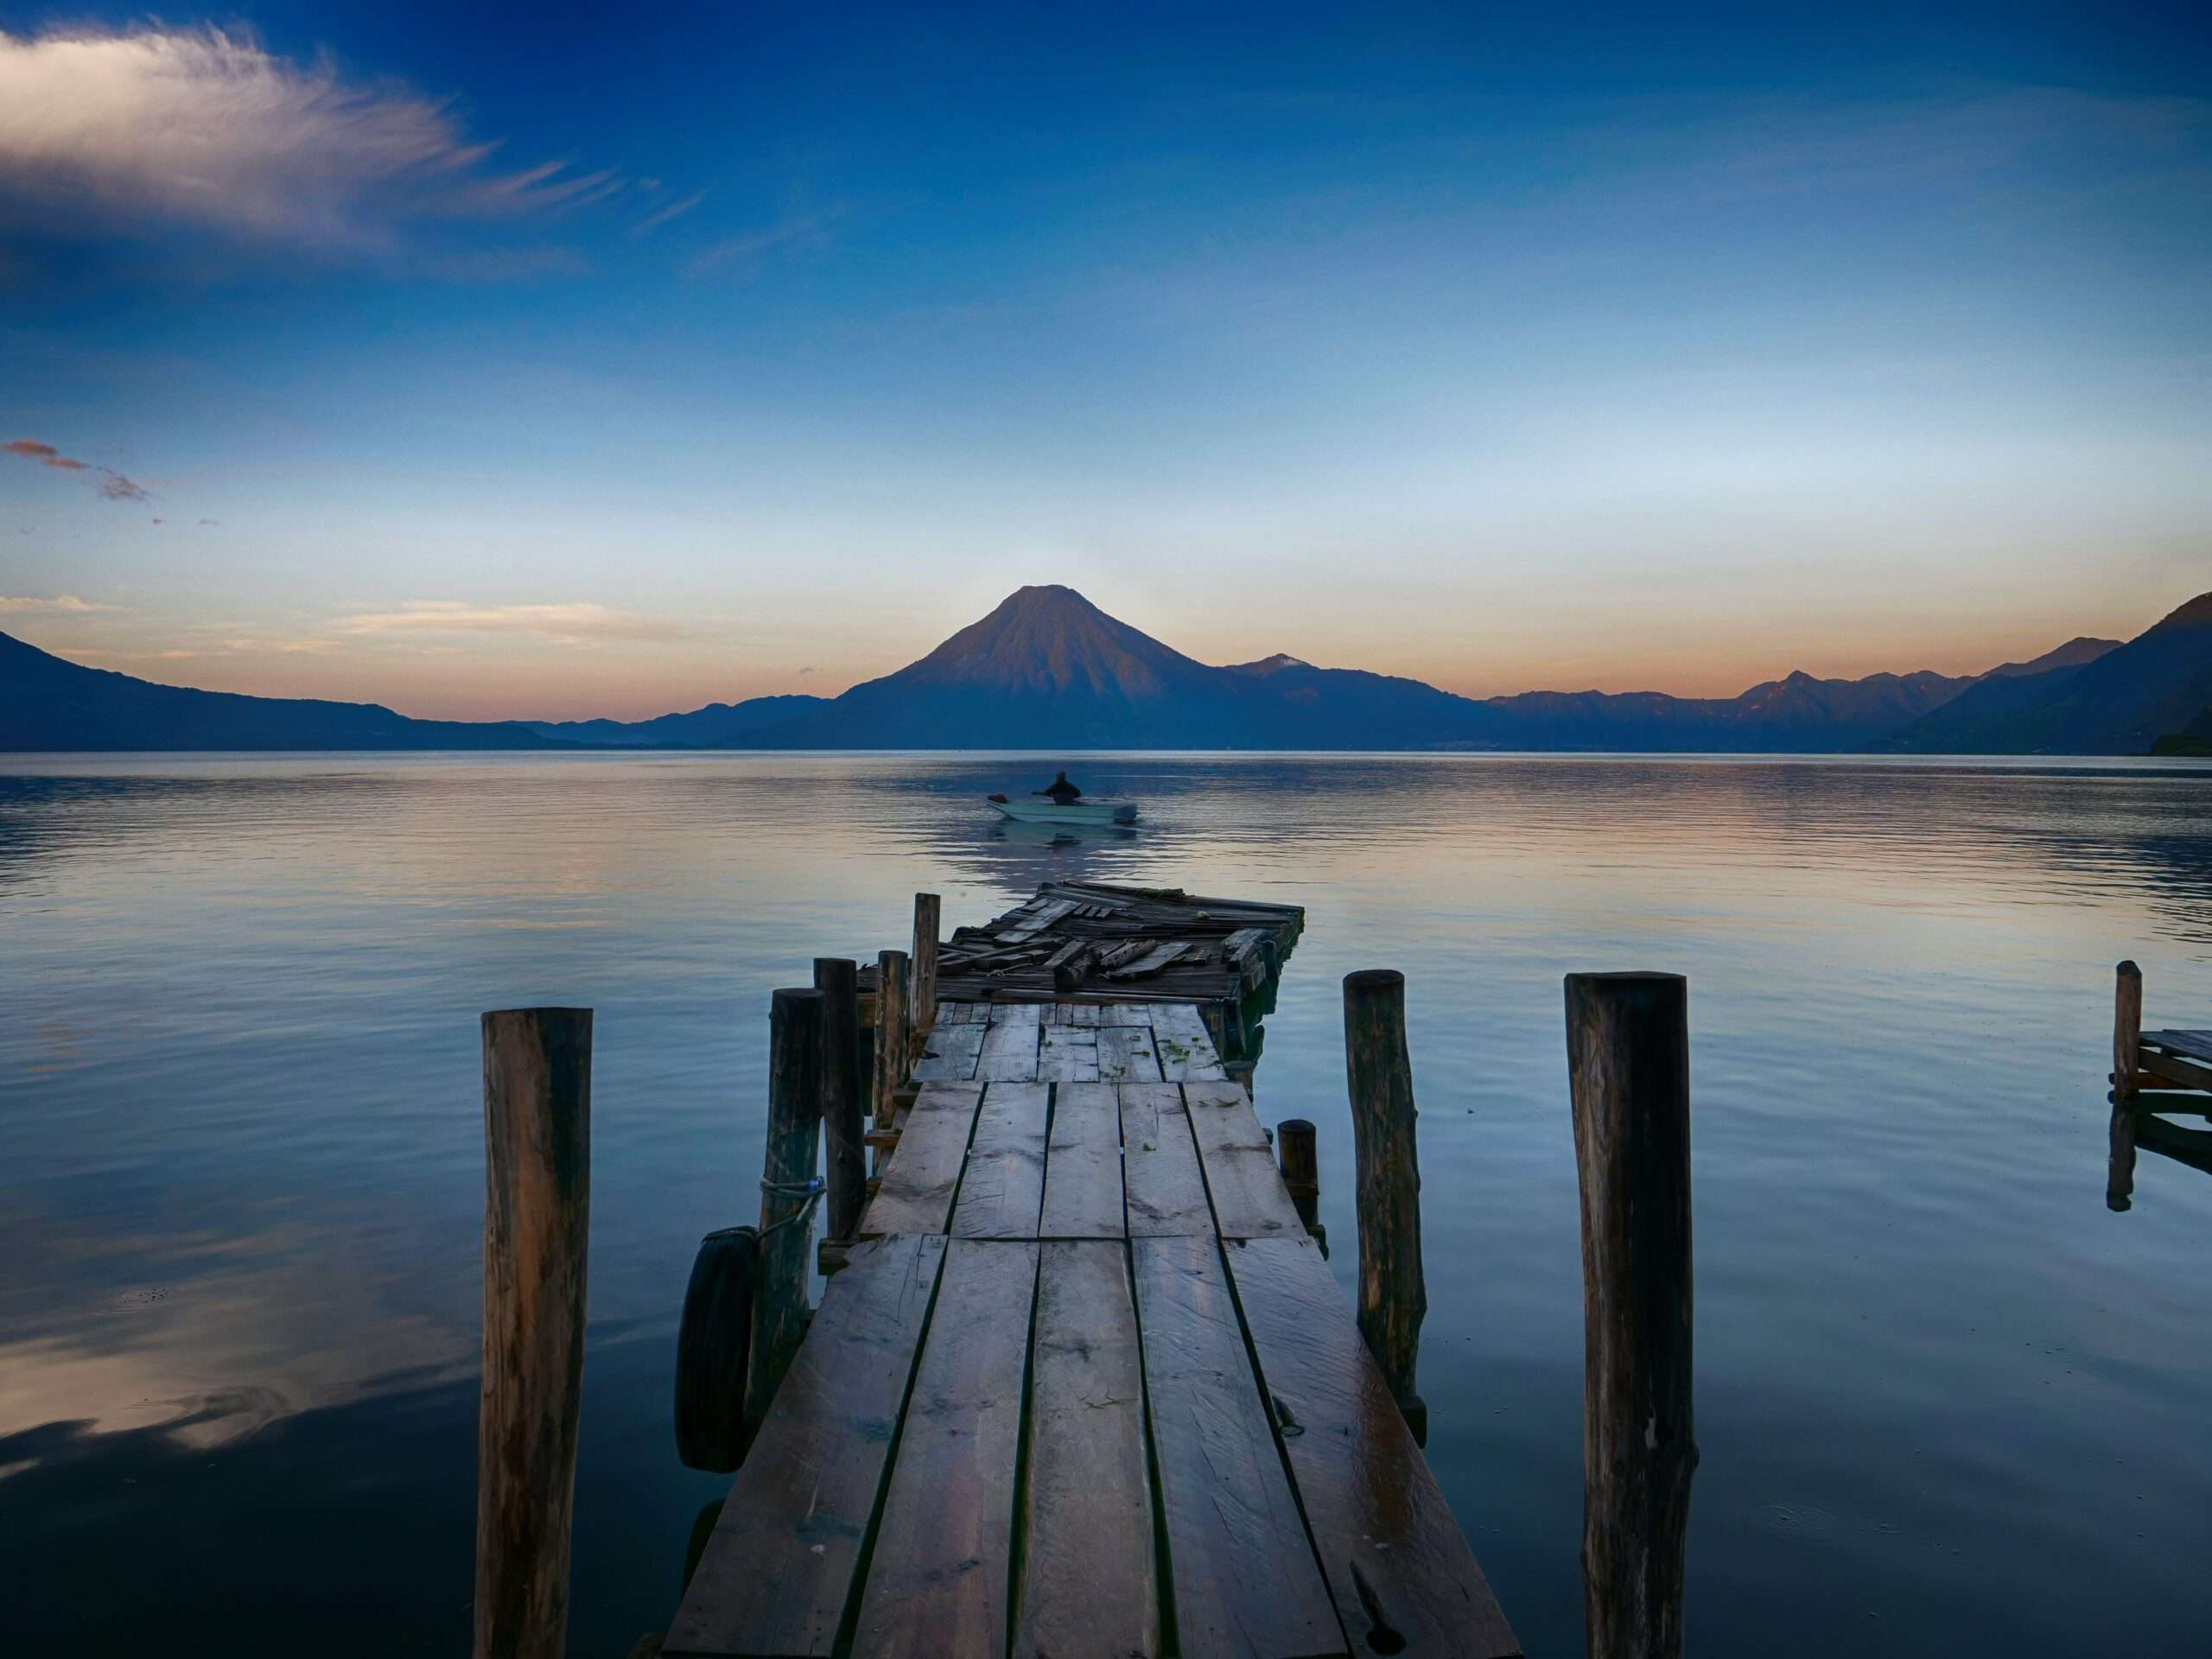 wooden dock over the water, as the sun rises behind a volcano and over Lake Atitlan